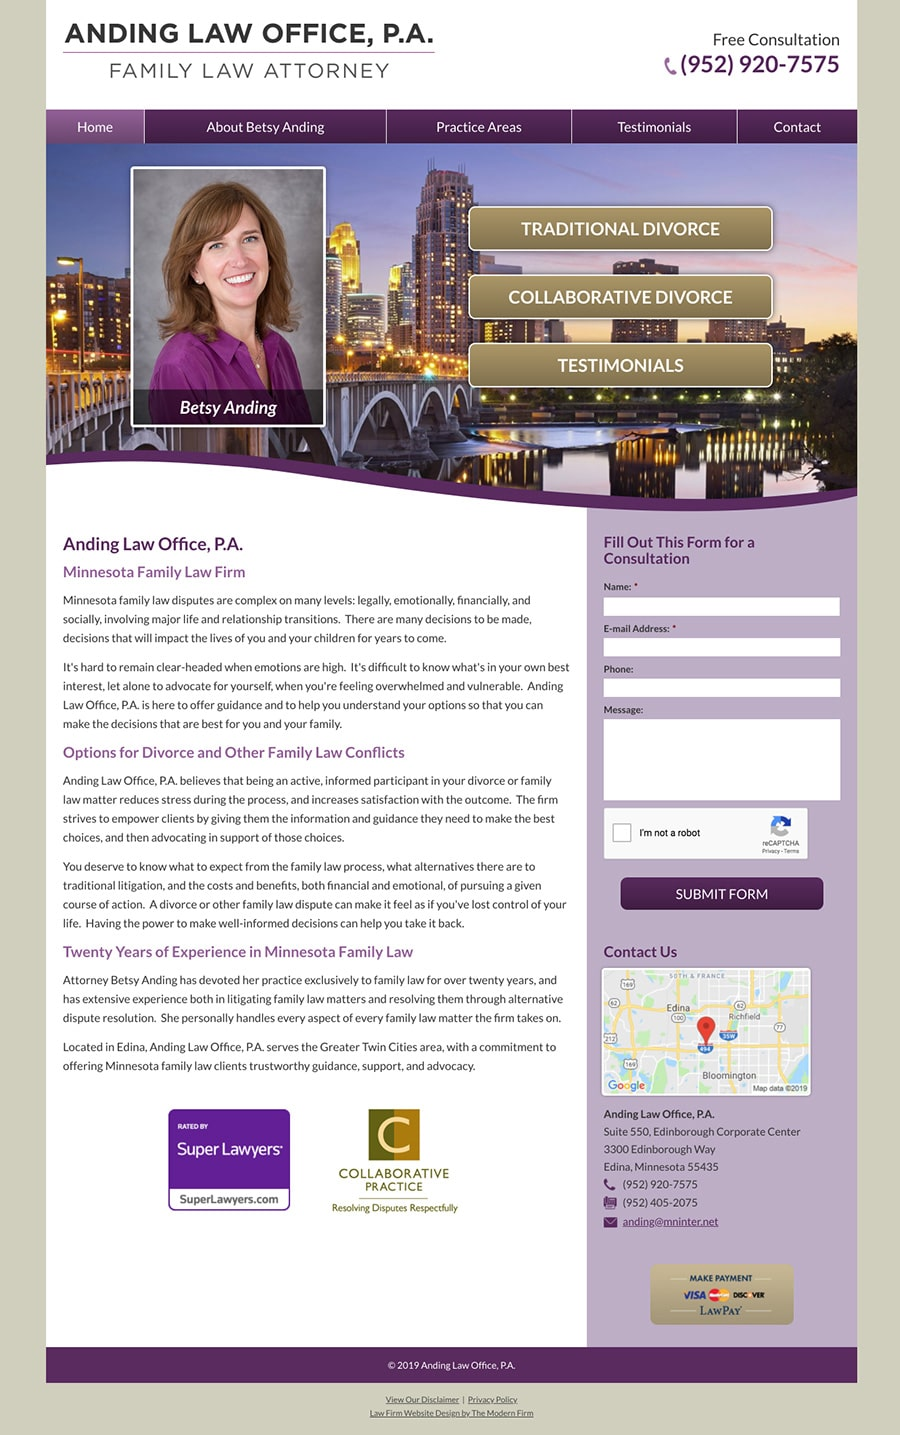 Law Firm Website Design for Anding Law Office, P.A.